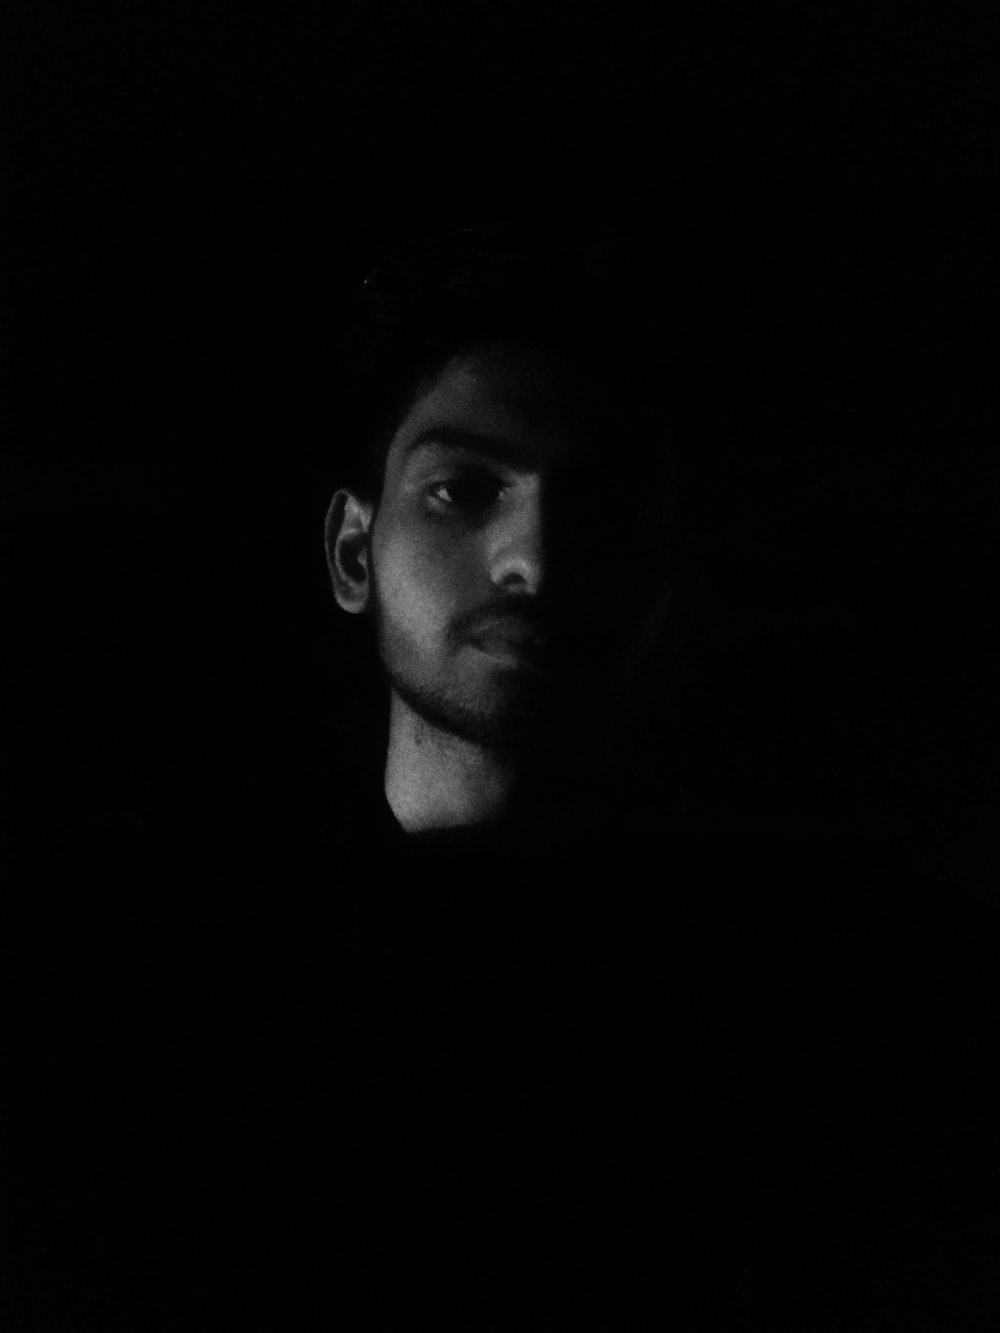 mans face in grayscale photography